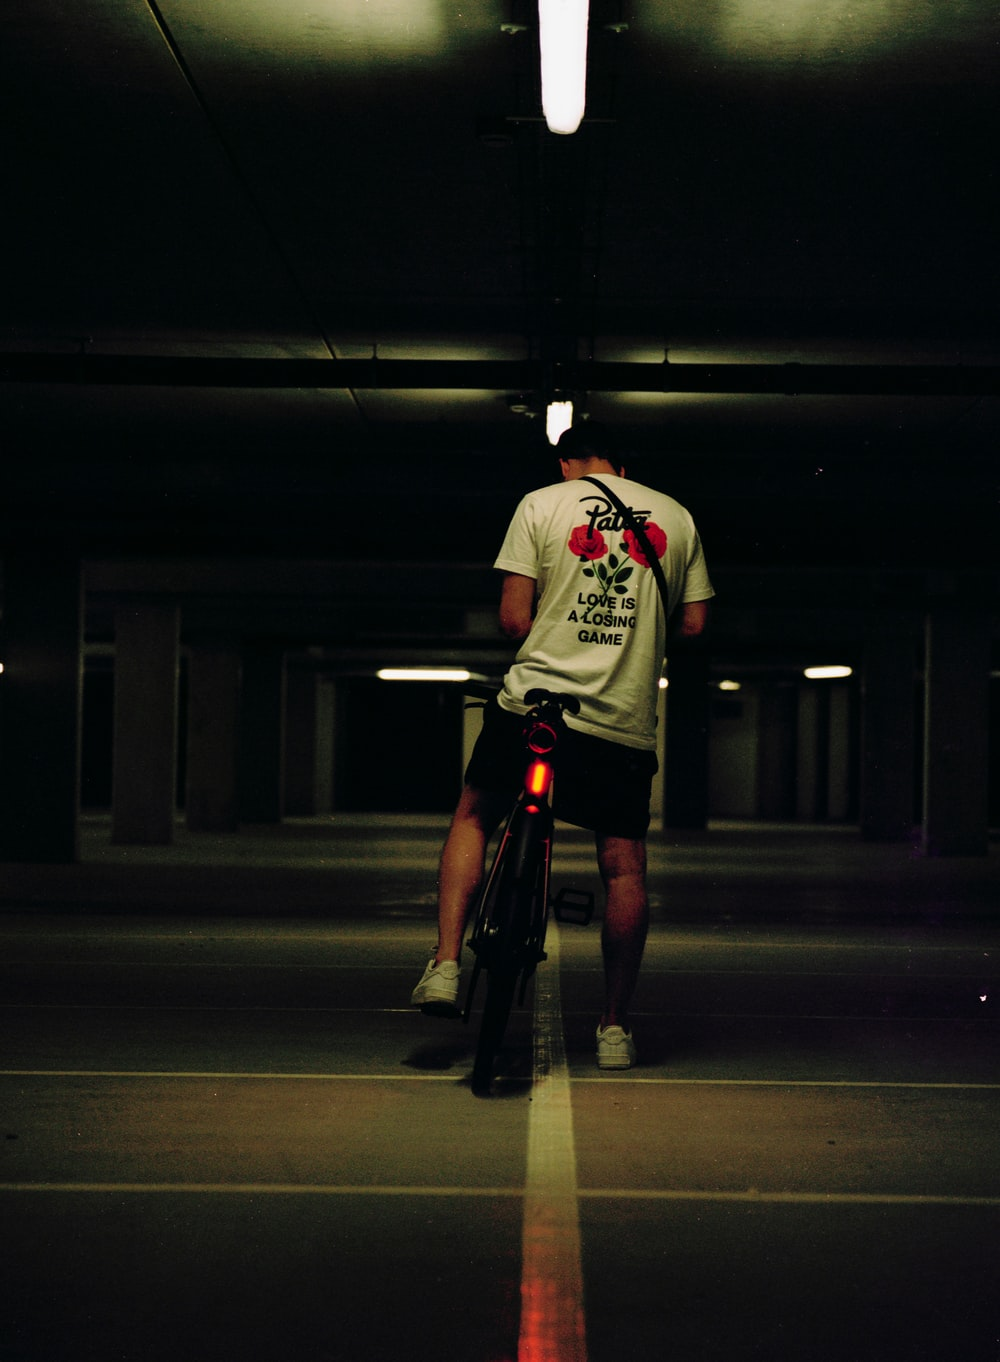 man in white and red crew neck t-shirt and black shorts riding bicycle